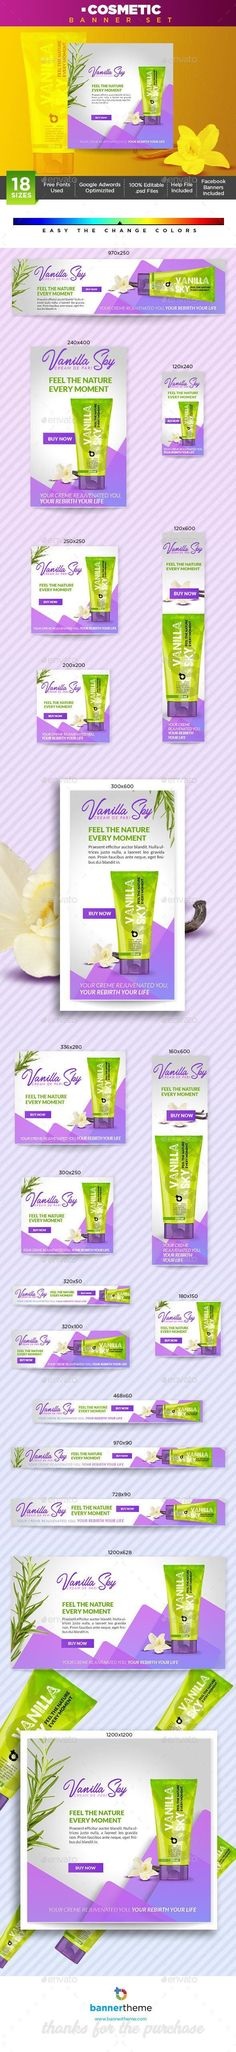 Buy Cosmetic Banner by bannertheme on GraphicRiver. Cosmetic Banner Wonderful banner designs for 18 different sizes ready for all your products, services, campaigns and . Web Design, Web Banner Design, Modern Logo Design, Make Design, Web Banners, Flat Design, Graphic Design, Instagram Banner, Website Logo